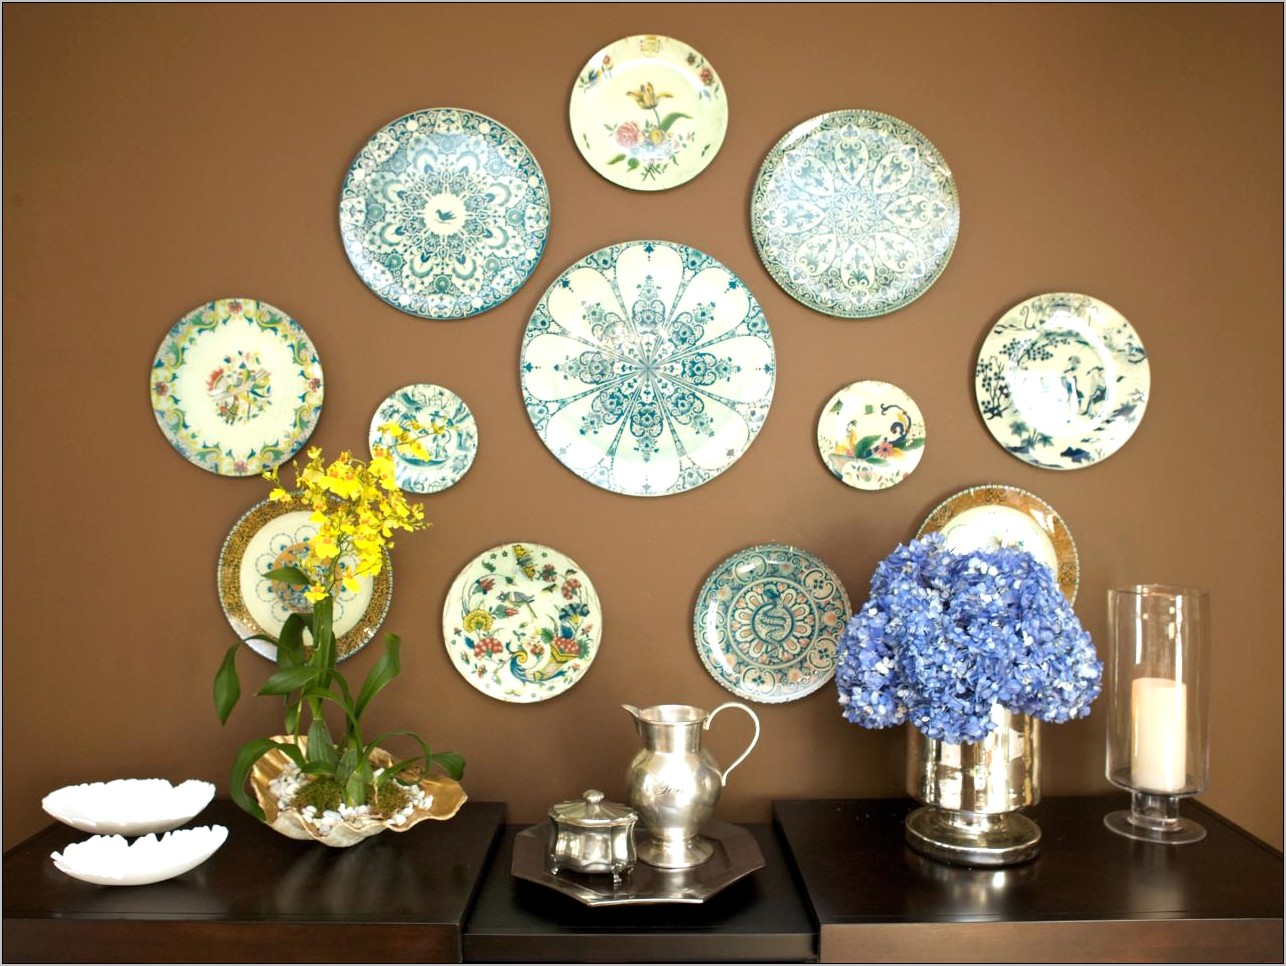 The Family Kitchen Glass Decore Plate